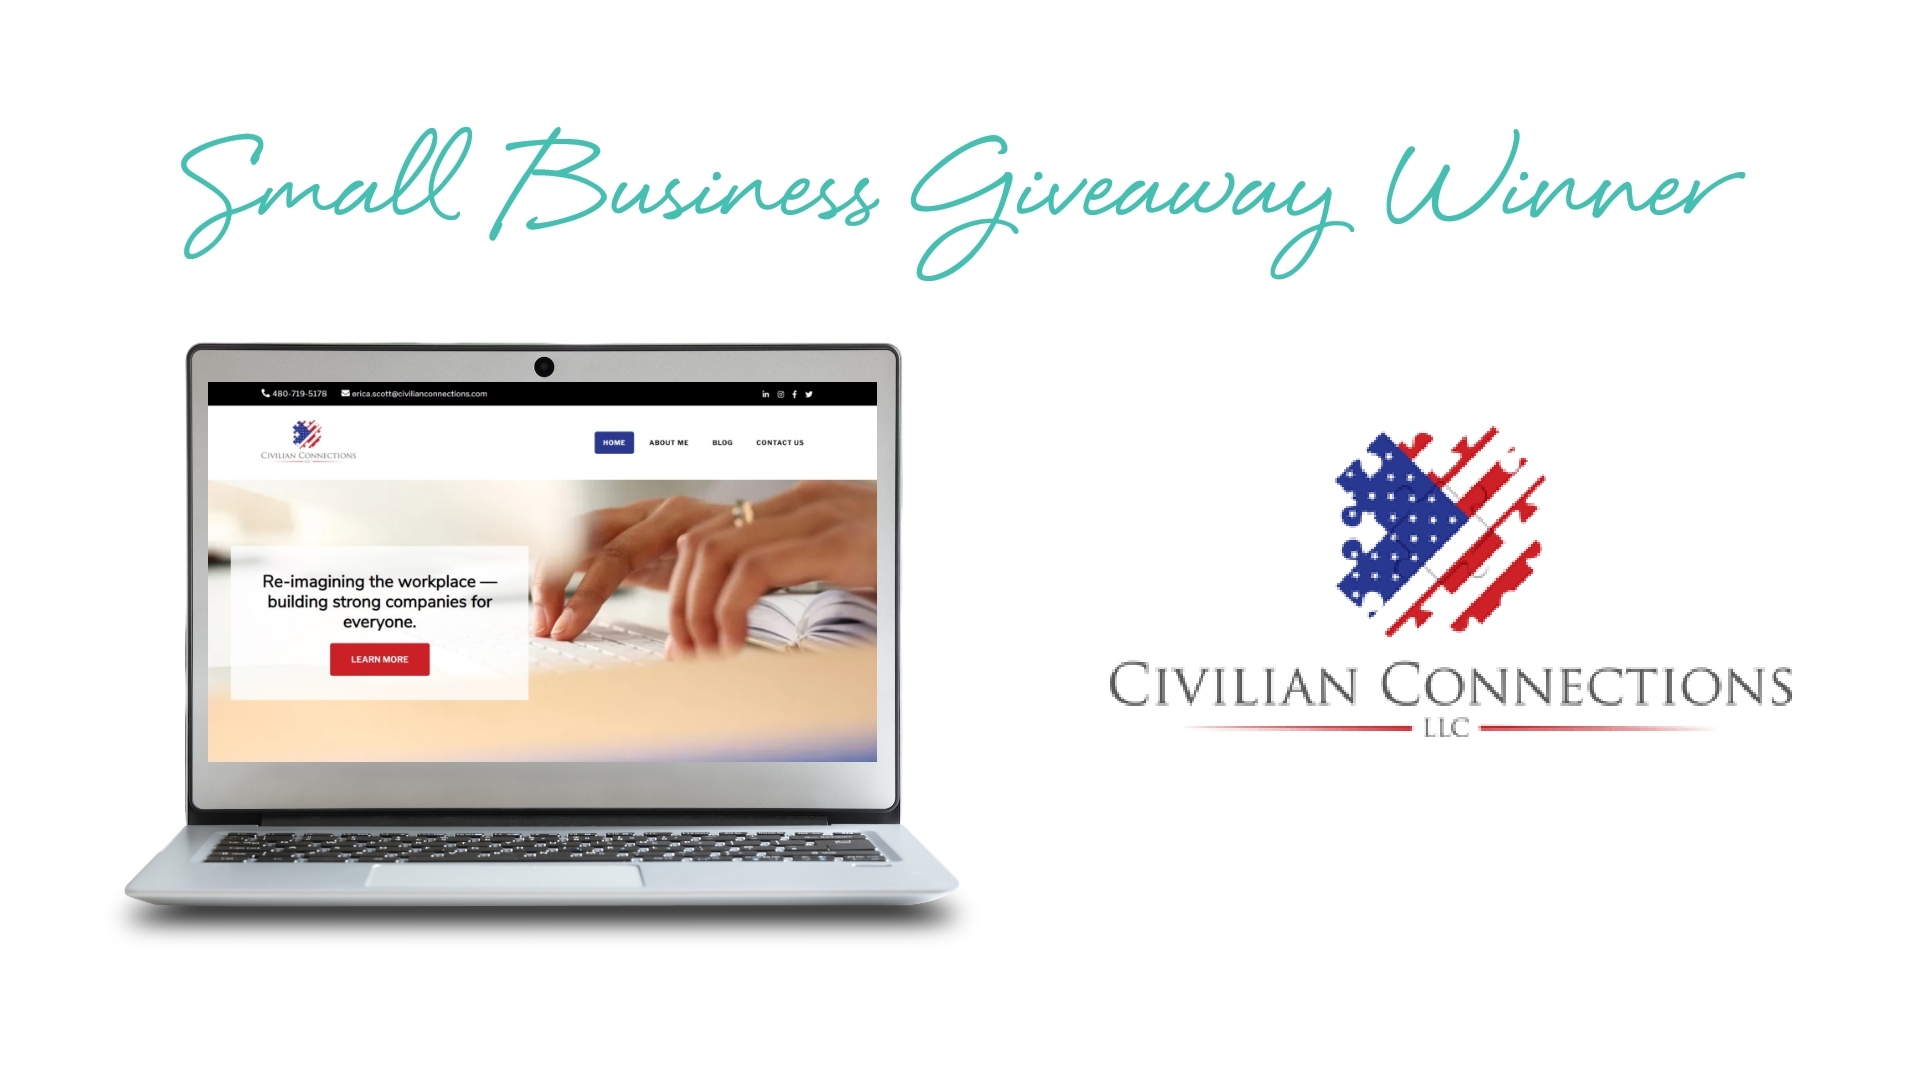 Civilian Connections Giveaway Winner Hammersmith Support